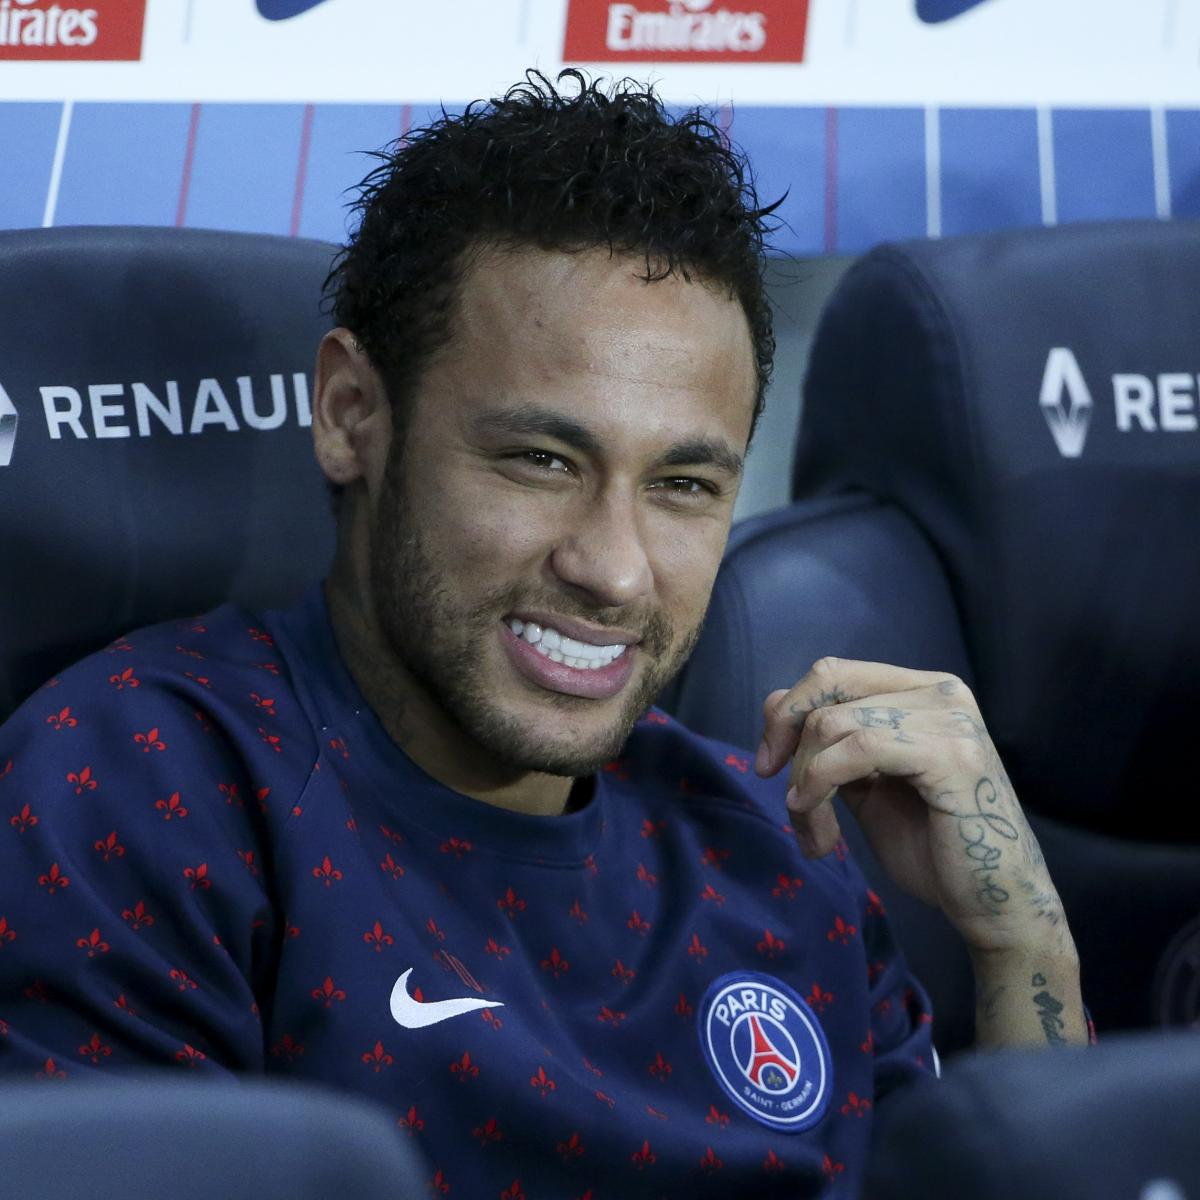 "Paris Saint-Germain superstar Neymar has co-created a fragrance with Diesel that he hopes will "" reflect his own story and what bravery means to him..."